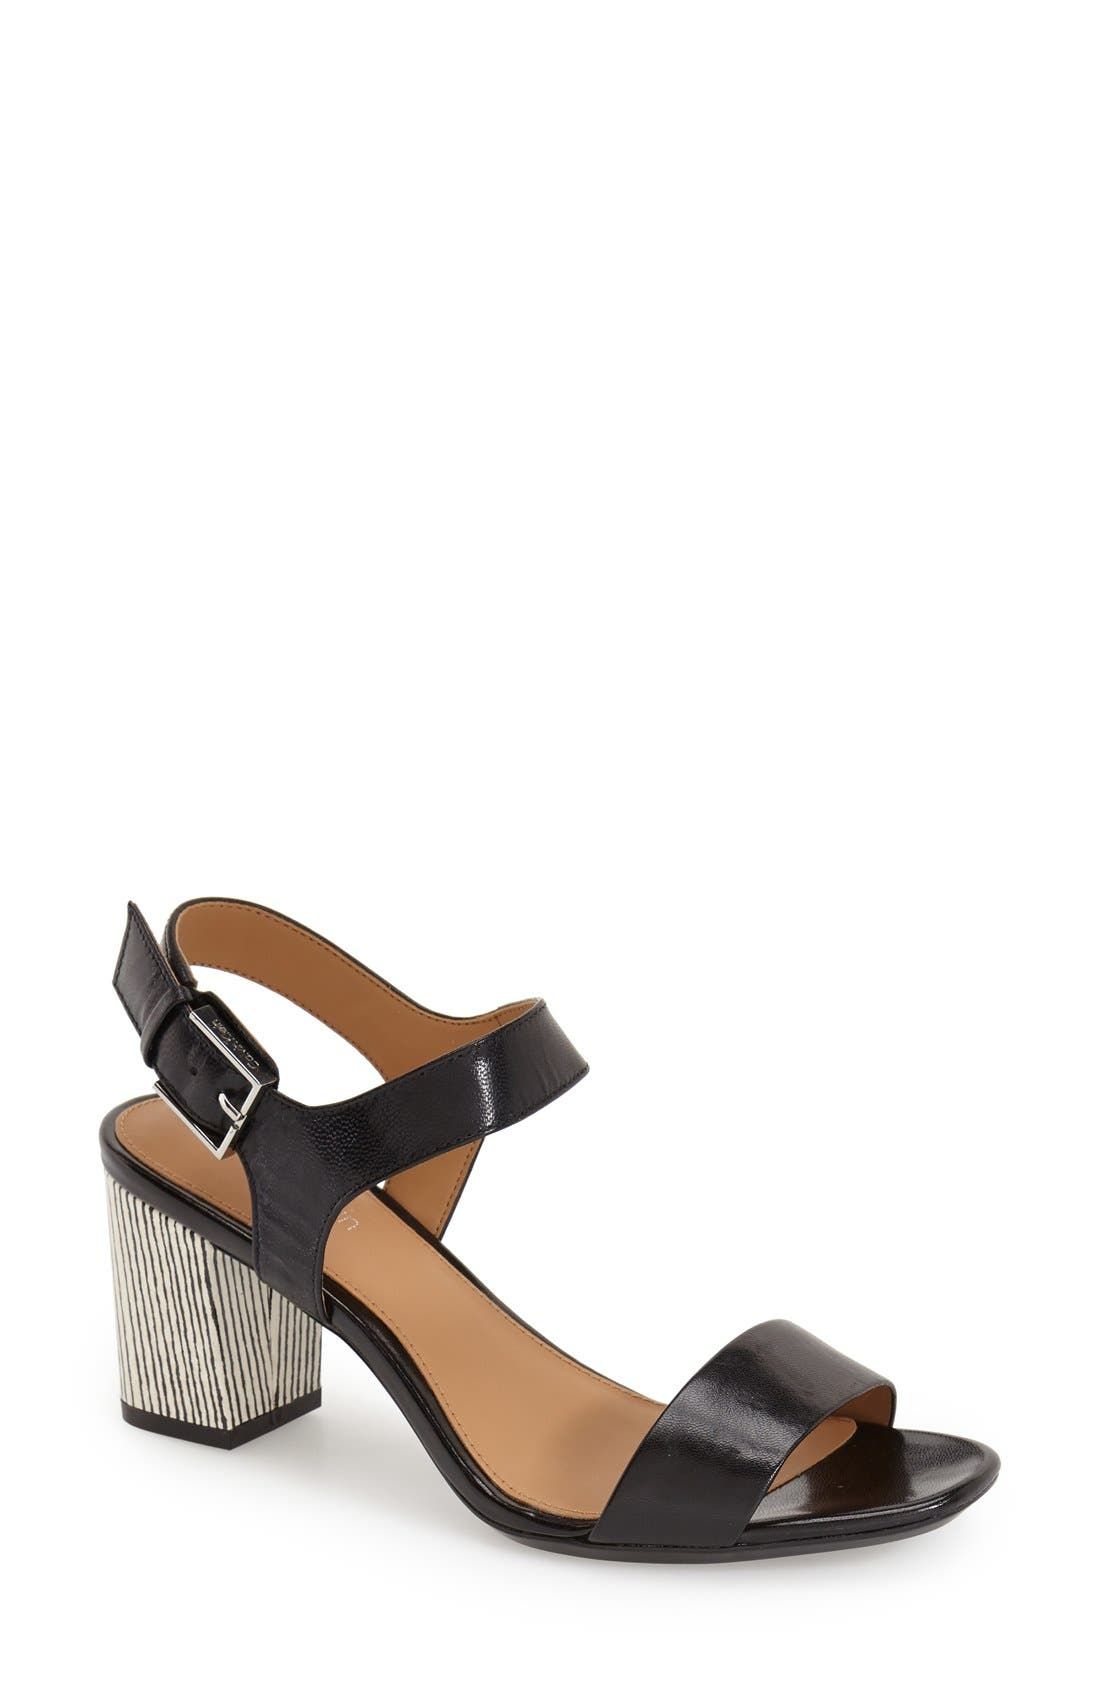 Alternate Image 1 Selected - Calvin Klein 'Cimi' Block Heel Sandal (Women)